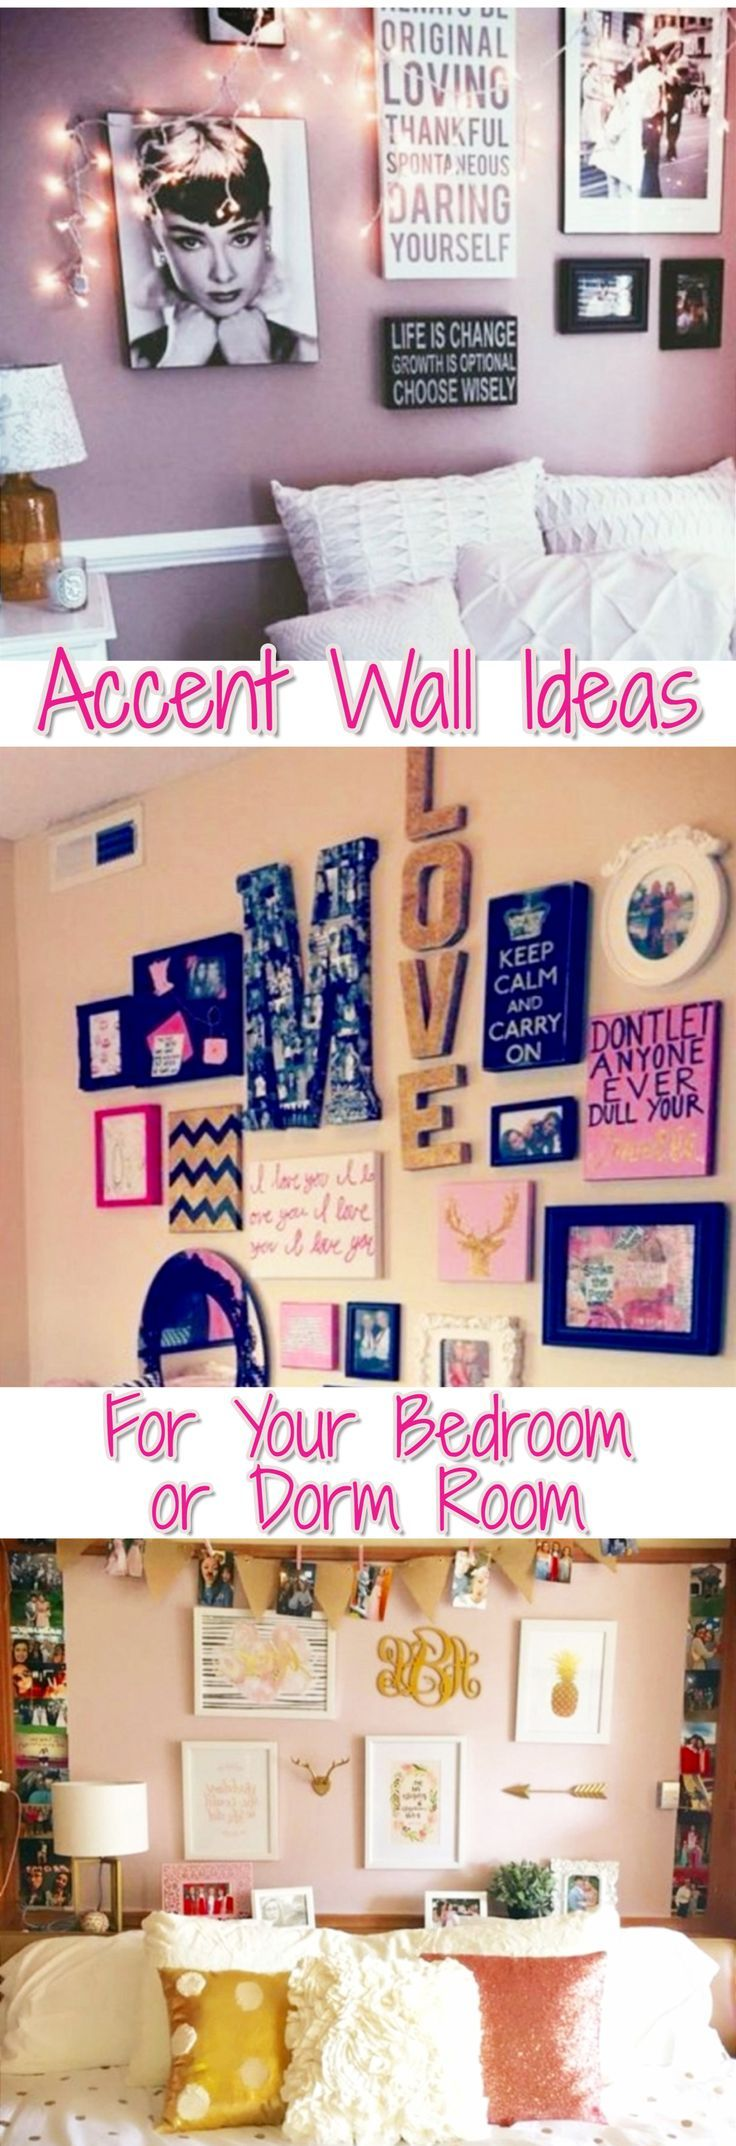 Accent walls - photo picture wall ideas (also called a Gallery Wall) - super cute ideas for your bedroom or dorm room!